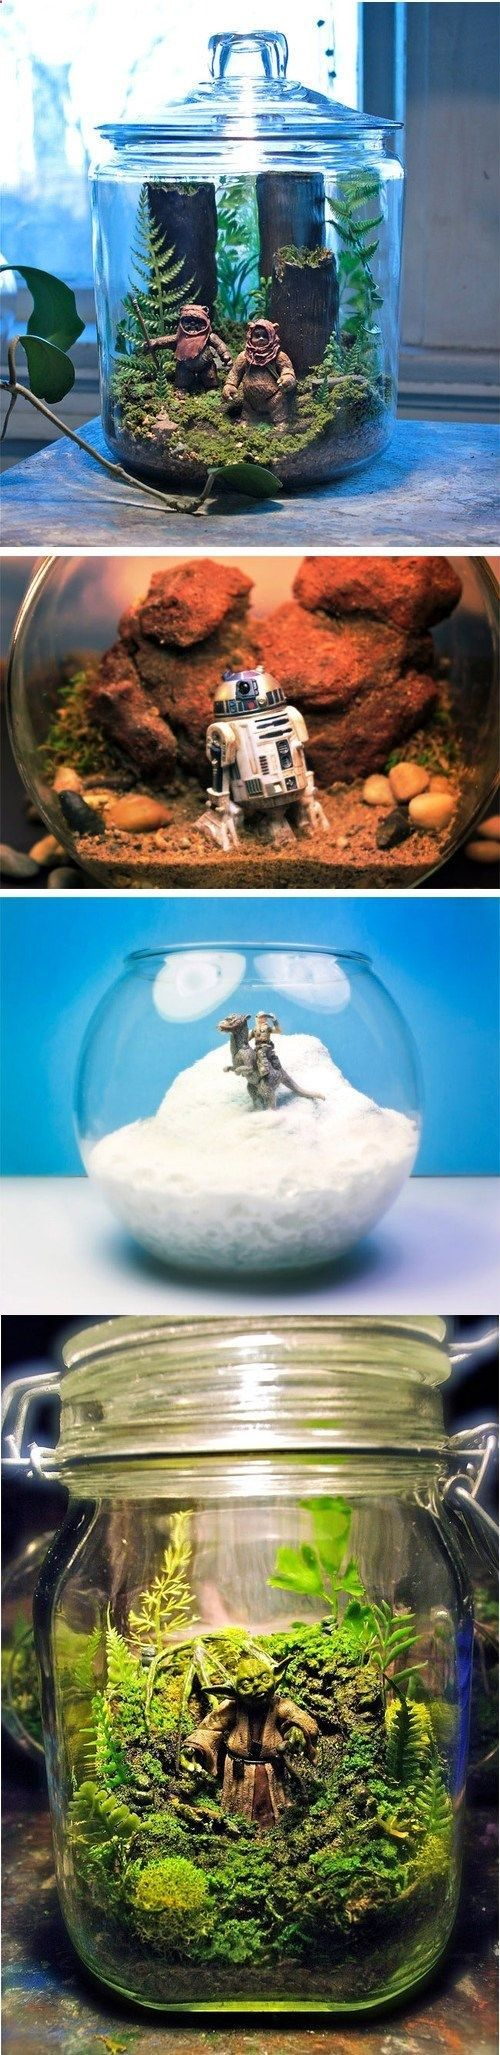 Awesome Star Wars Terrariums.. WIFE OF THE YEAR AWARDS!!!